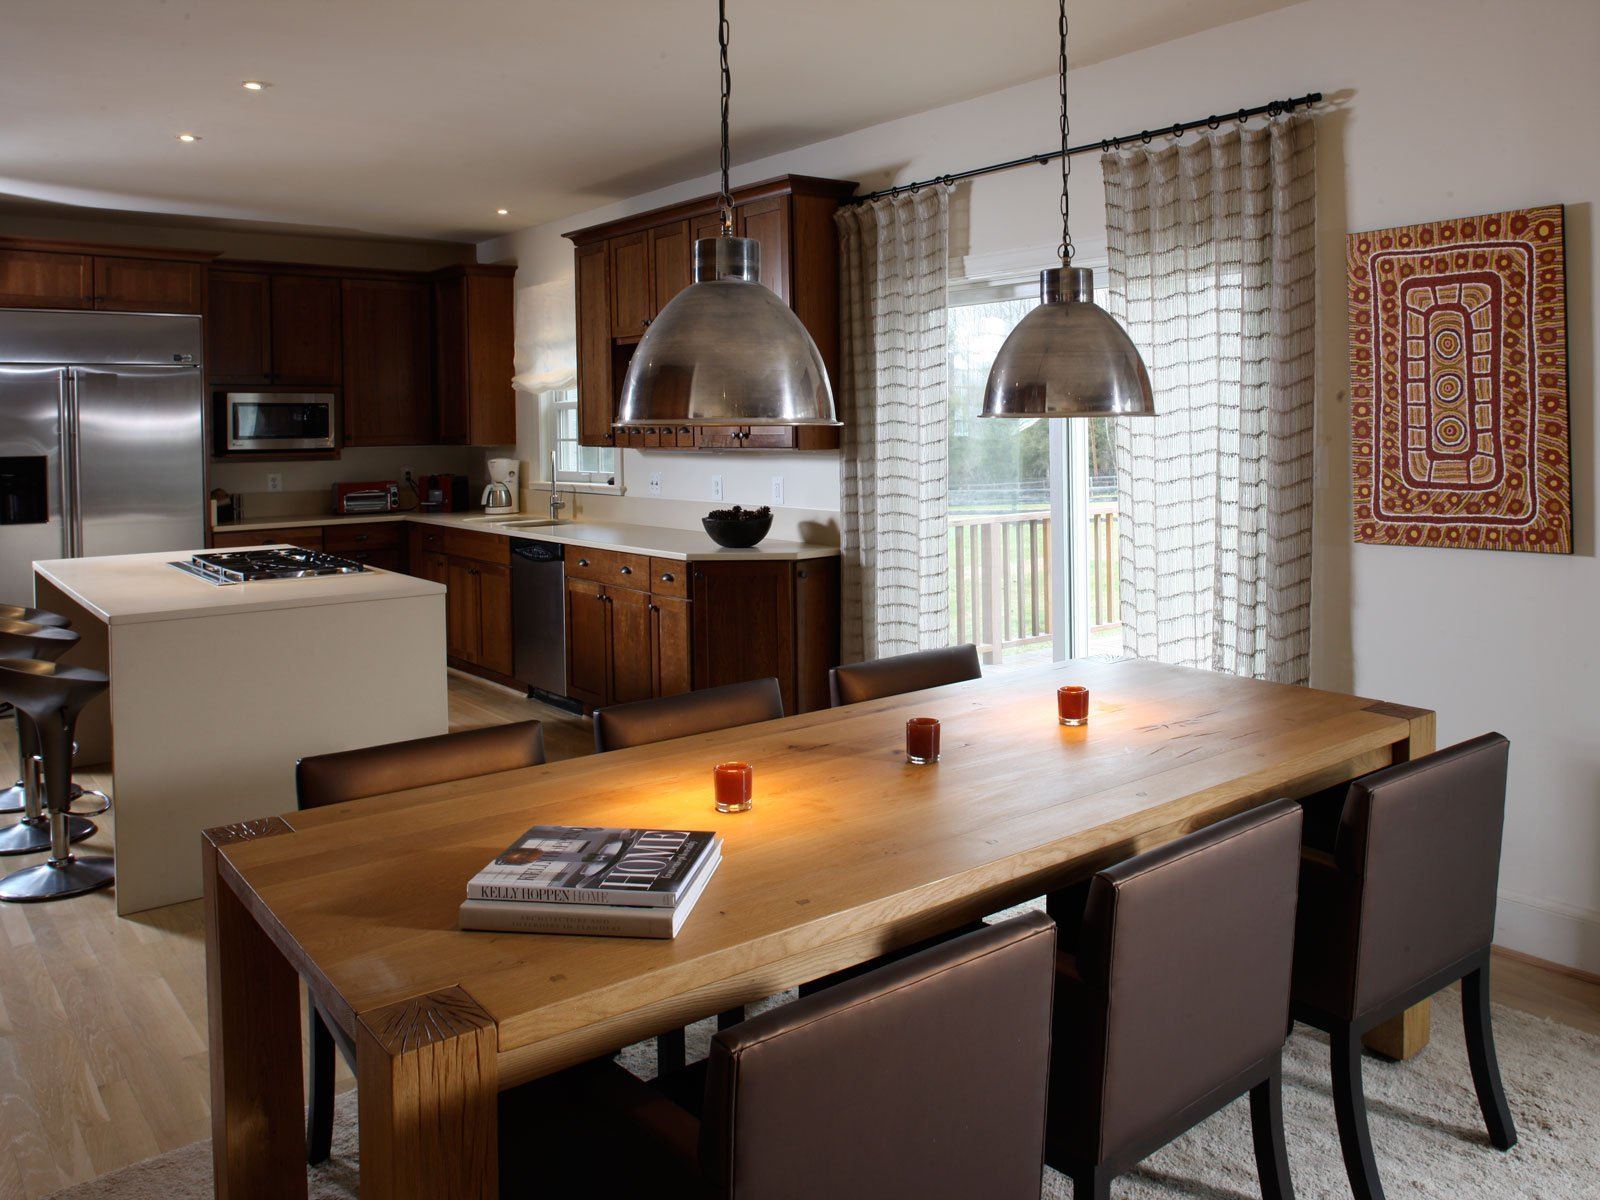 Contact Our Team To Talk About Kitchen Interior Design For Your Home Or  Business. Located In Northern Virginia, We Serve The Virginia, Maryland And  ...